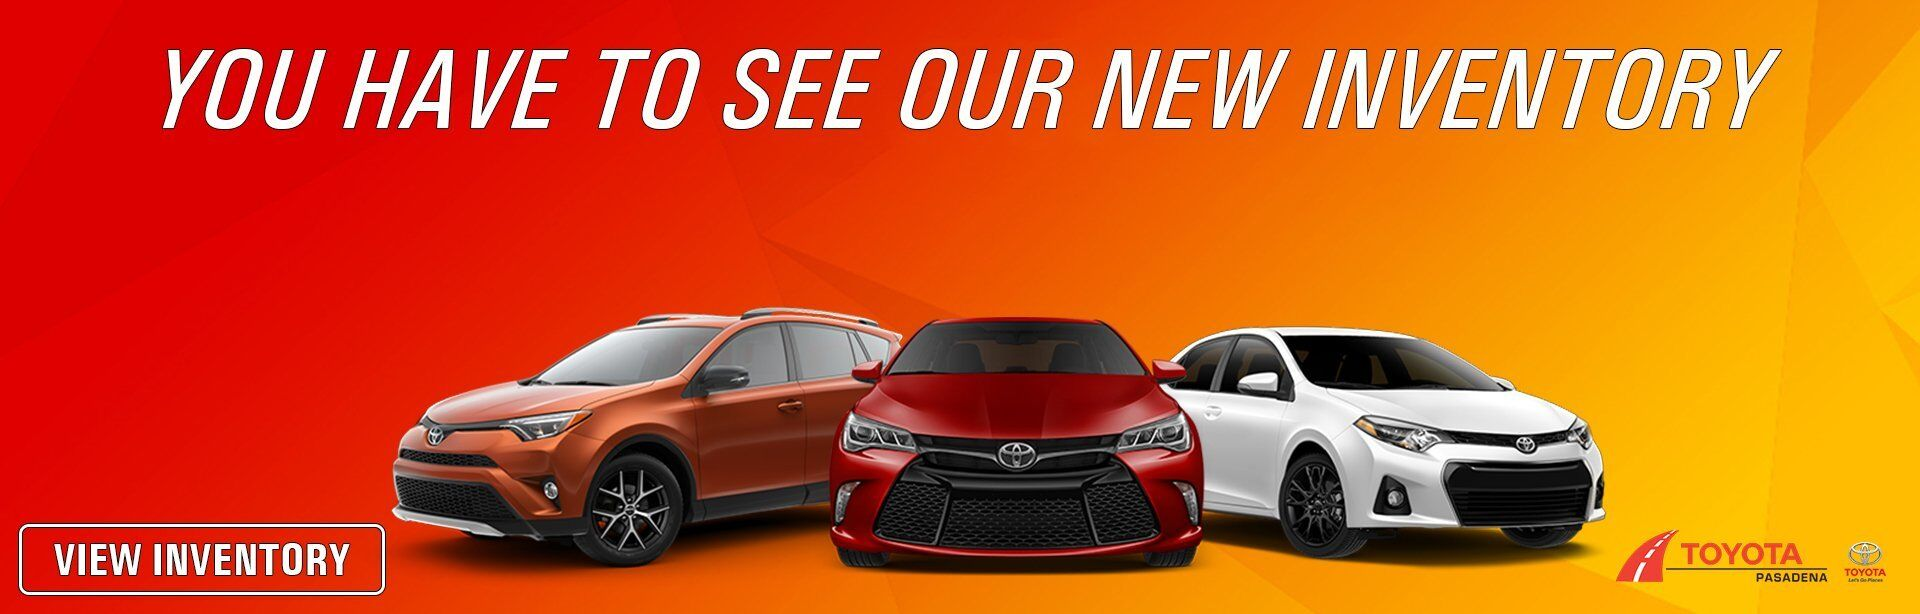 New Toyota Inventory